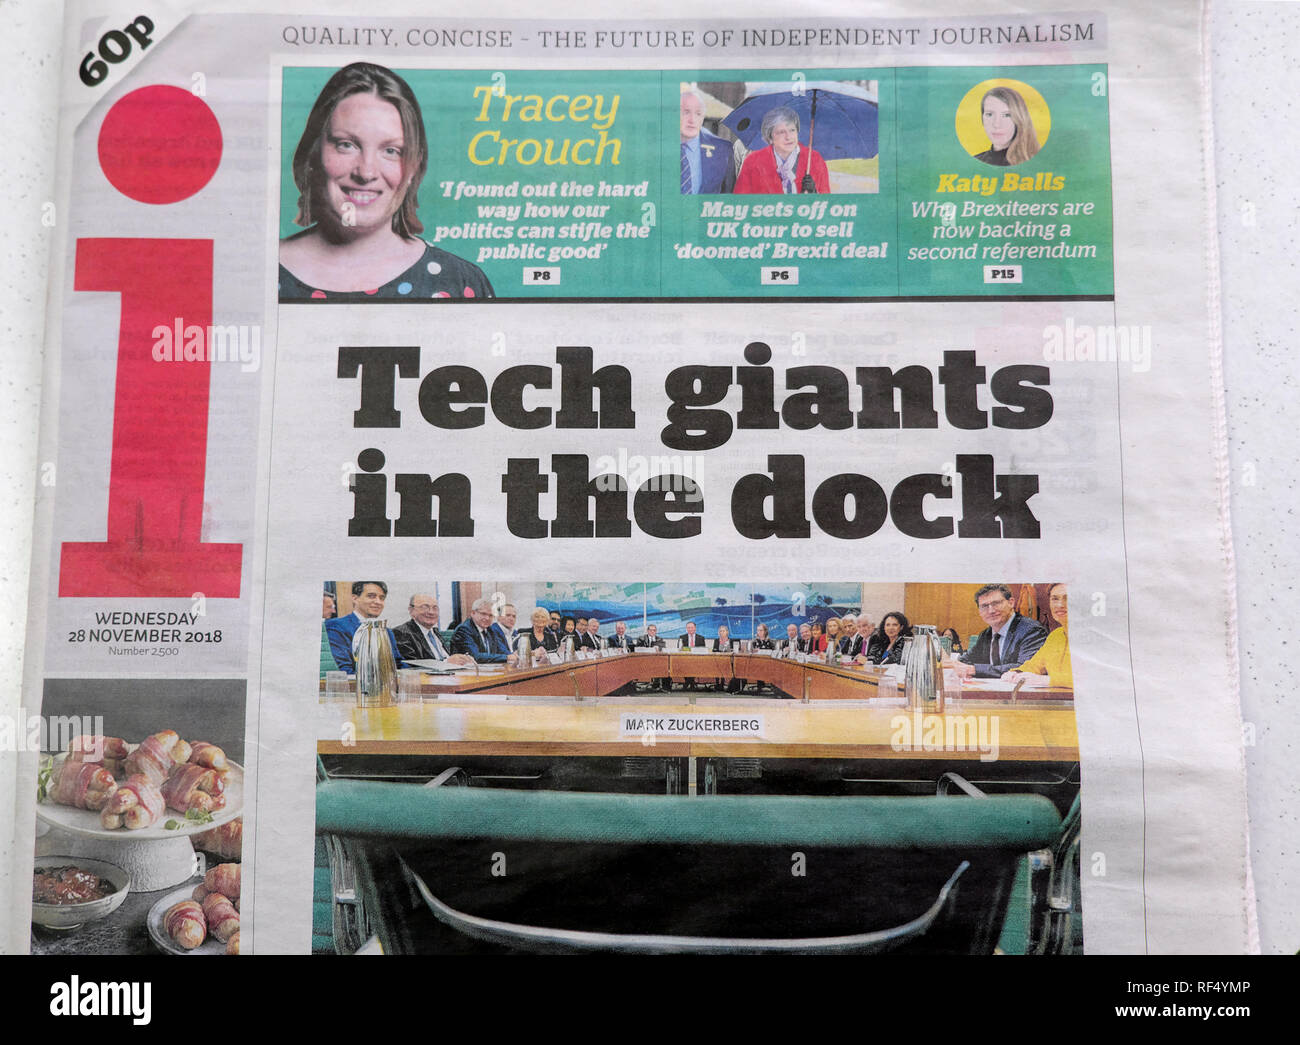 i newspaper front page 'Tech giants in the dock'  28 November 2018  London England UK - Stock Image